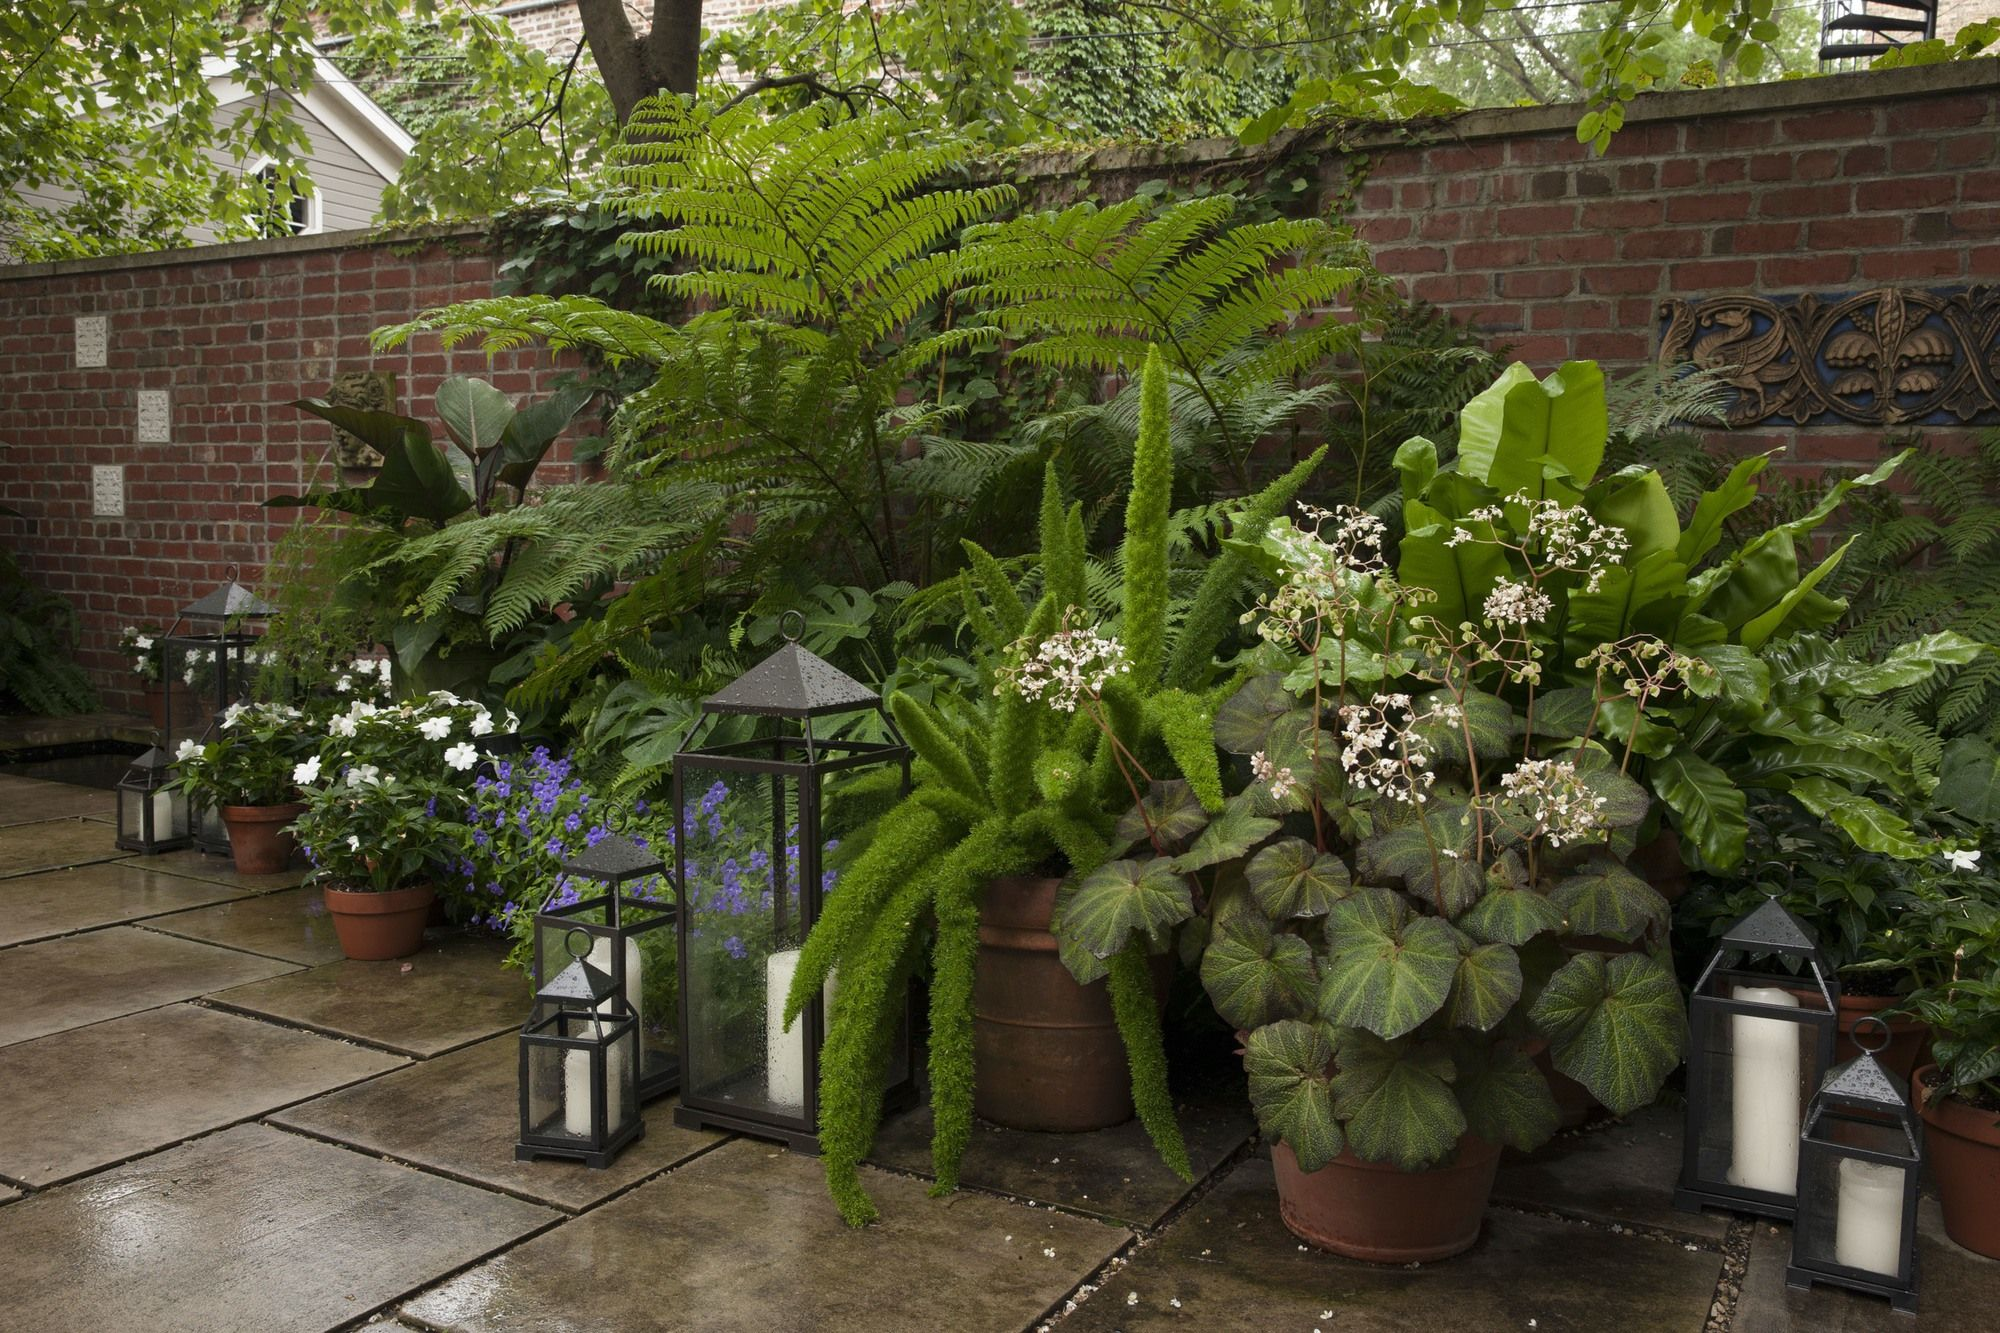 A glorious assortment of tropical ferns have turned my yard into my personal paradise. Here an Australian tree fern stands above container plantings of foxtail and bird's nest ferns and rex begonias. Image courtesy of Jayson DeGeeter.